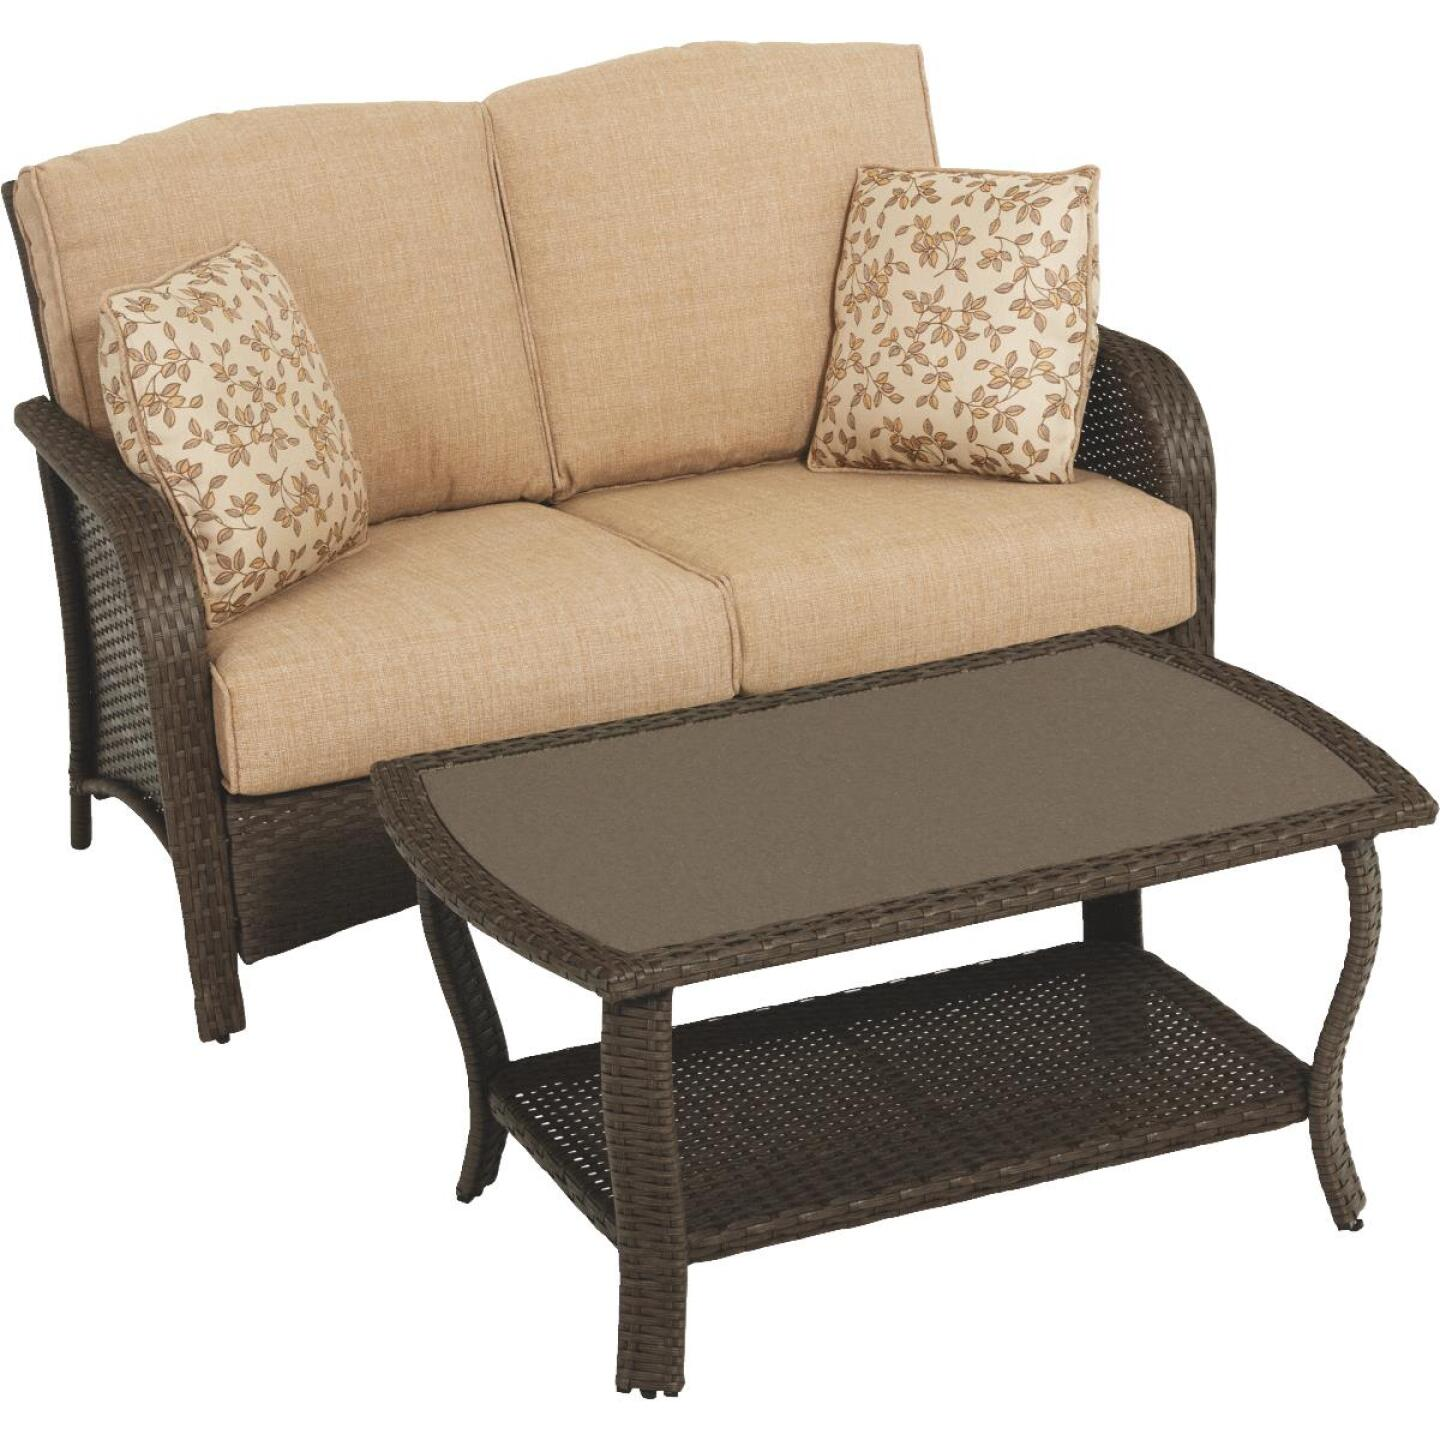 Pacific Casual Tiara Garden 2-Person Love Seat with Coffee Table Image 1